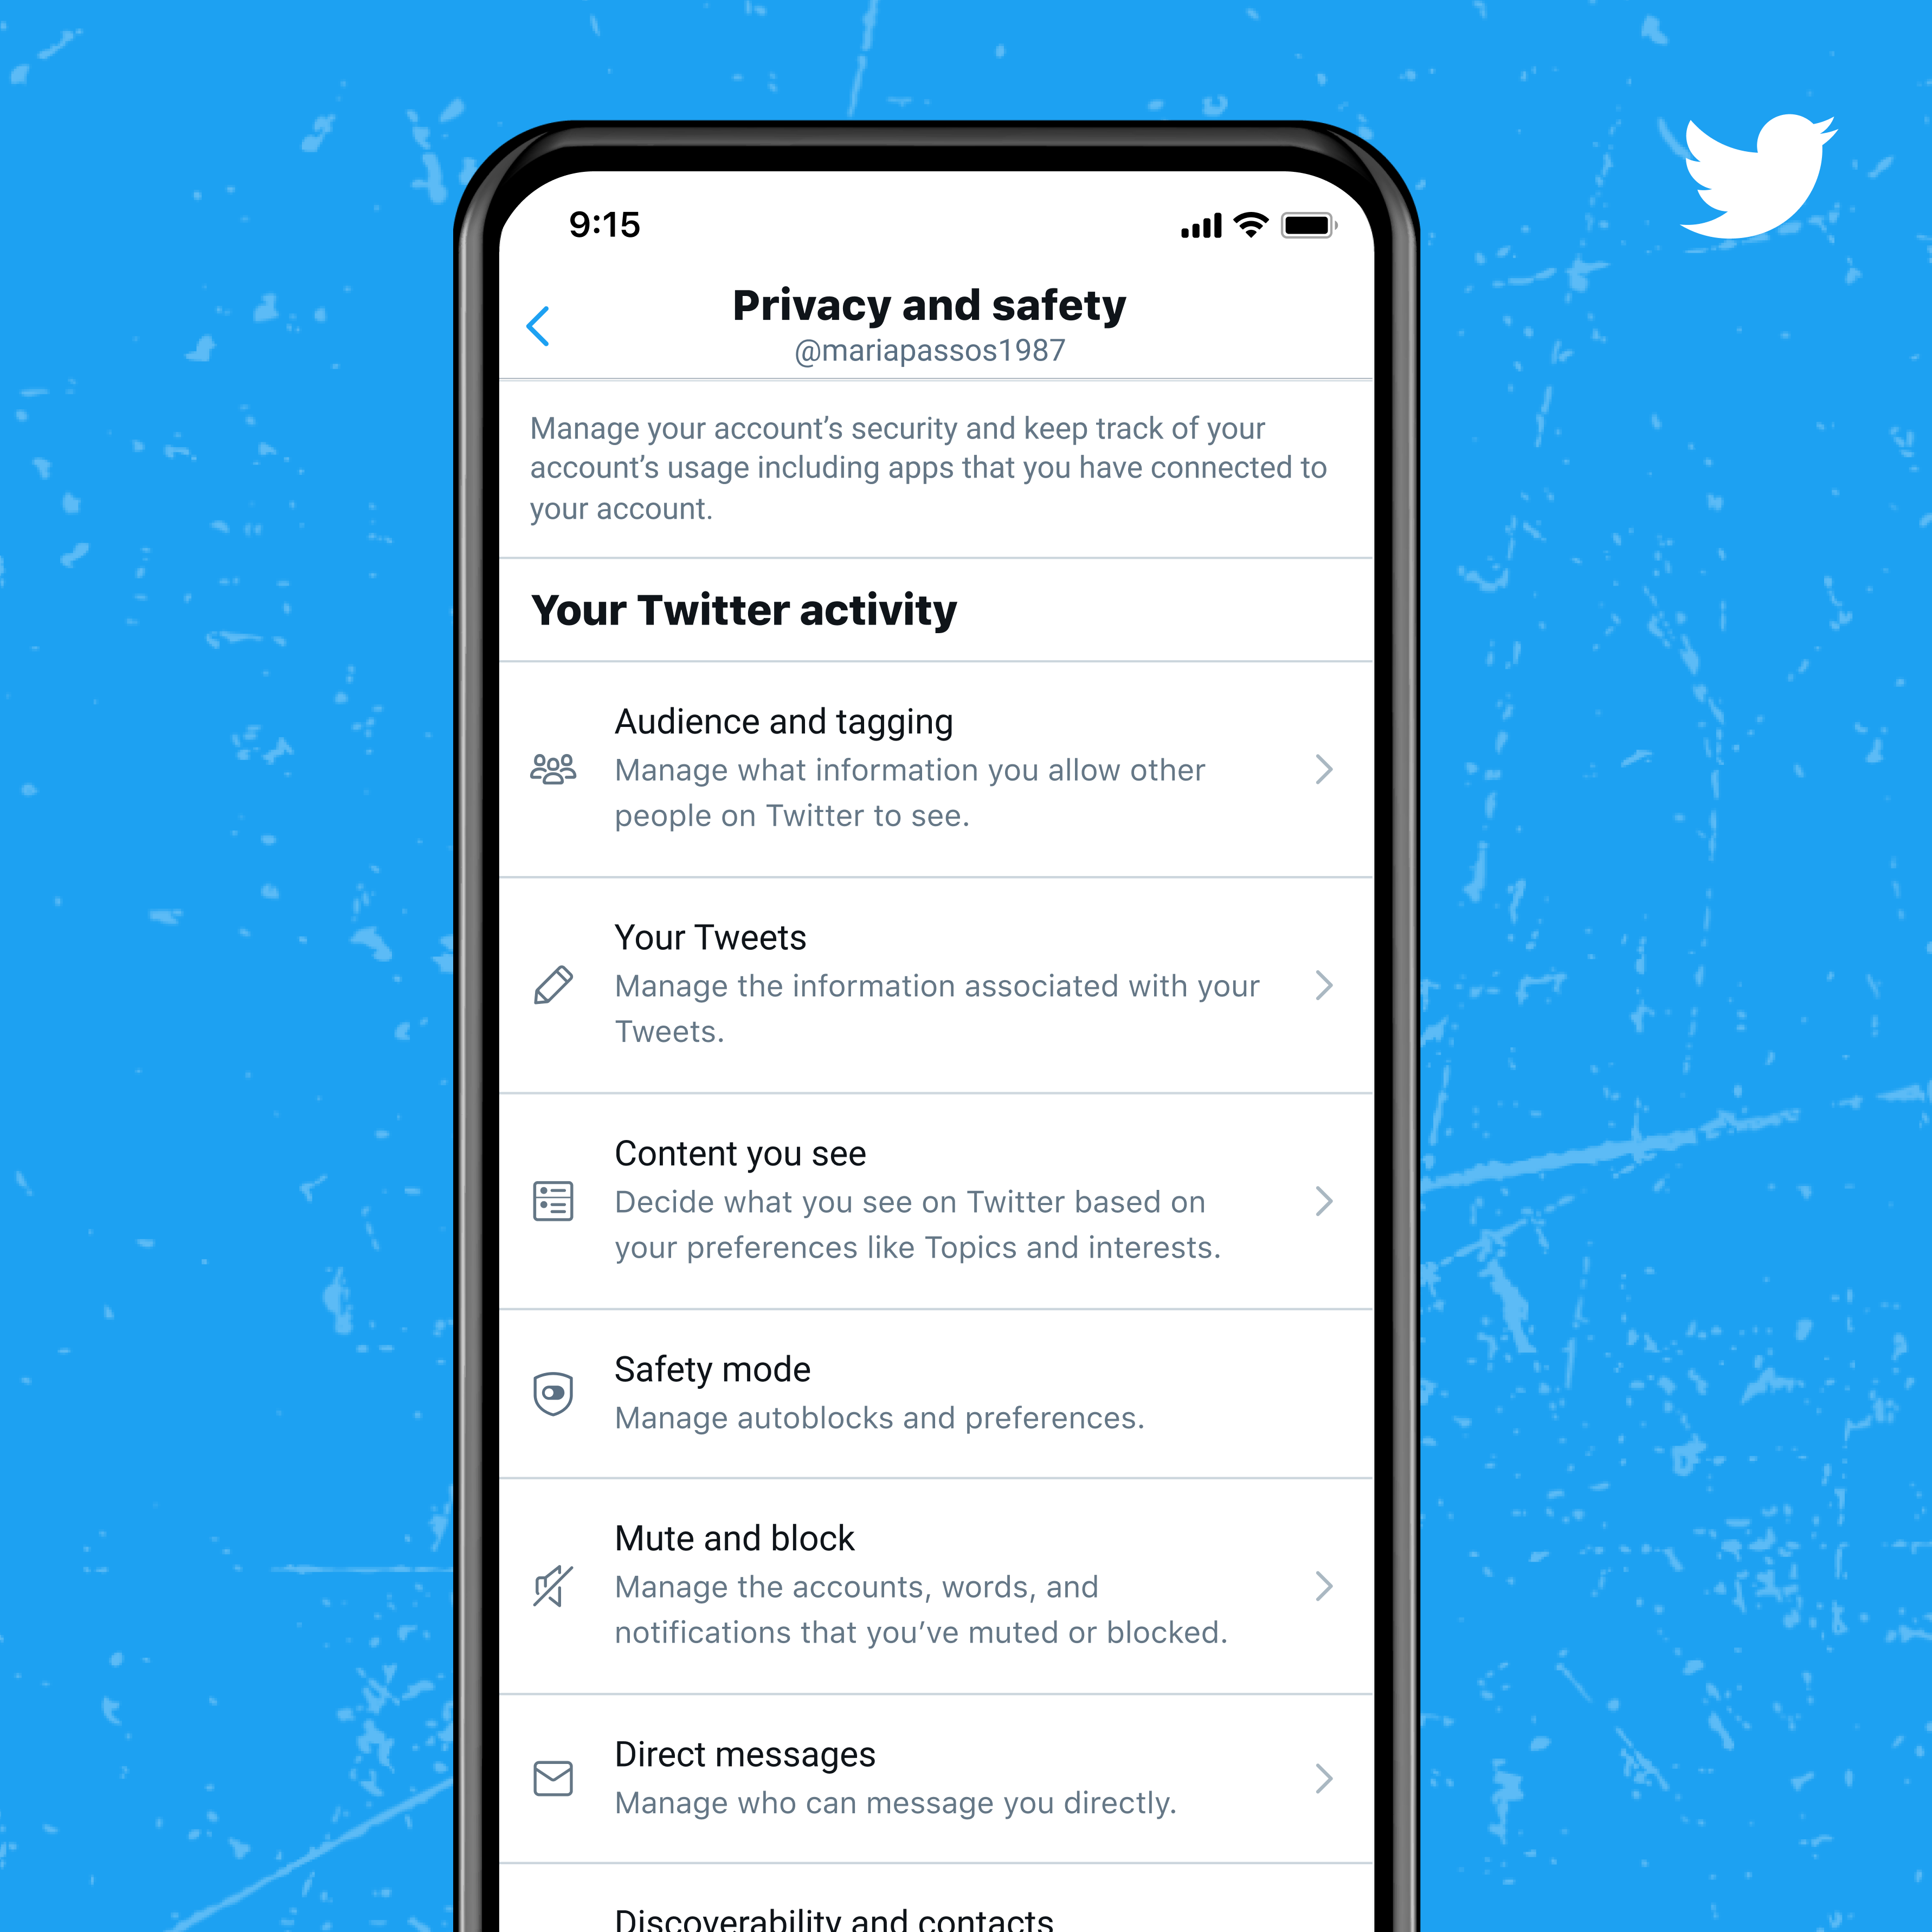 Twitter, <b> Twitter's 'Safety Mode' protects you against unwanted DMs and replies </b>